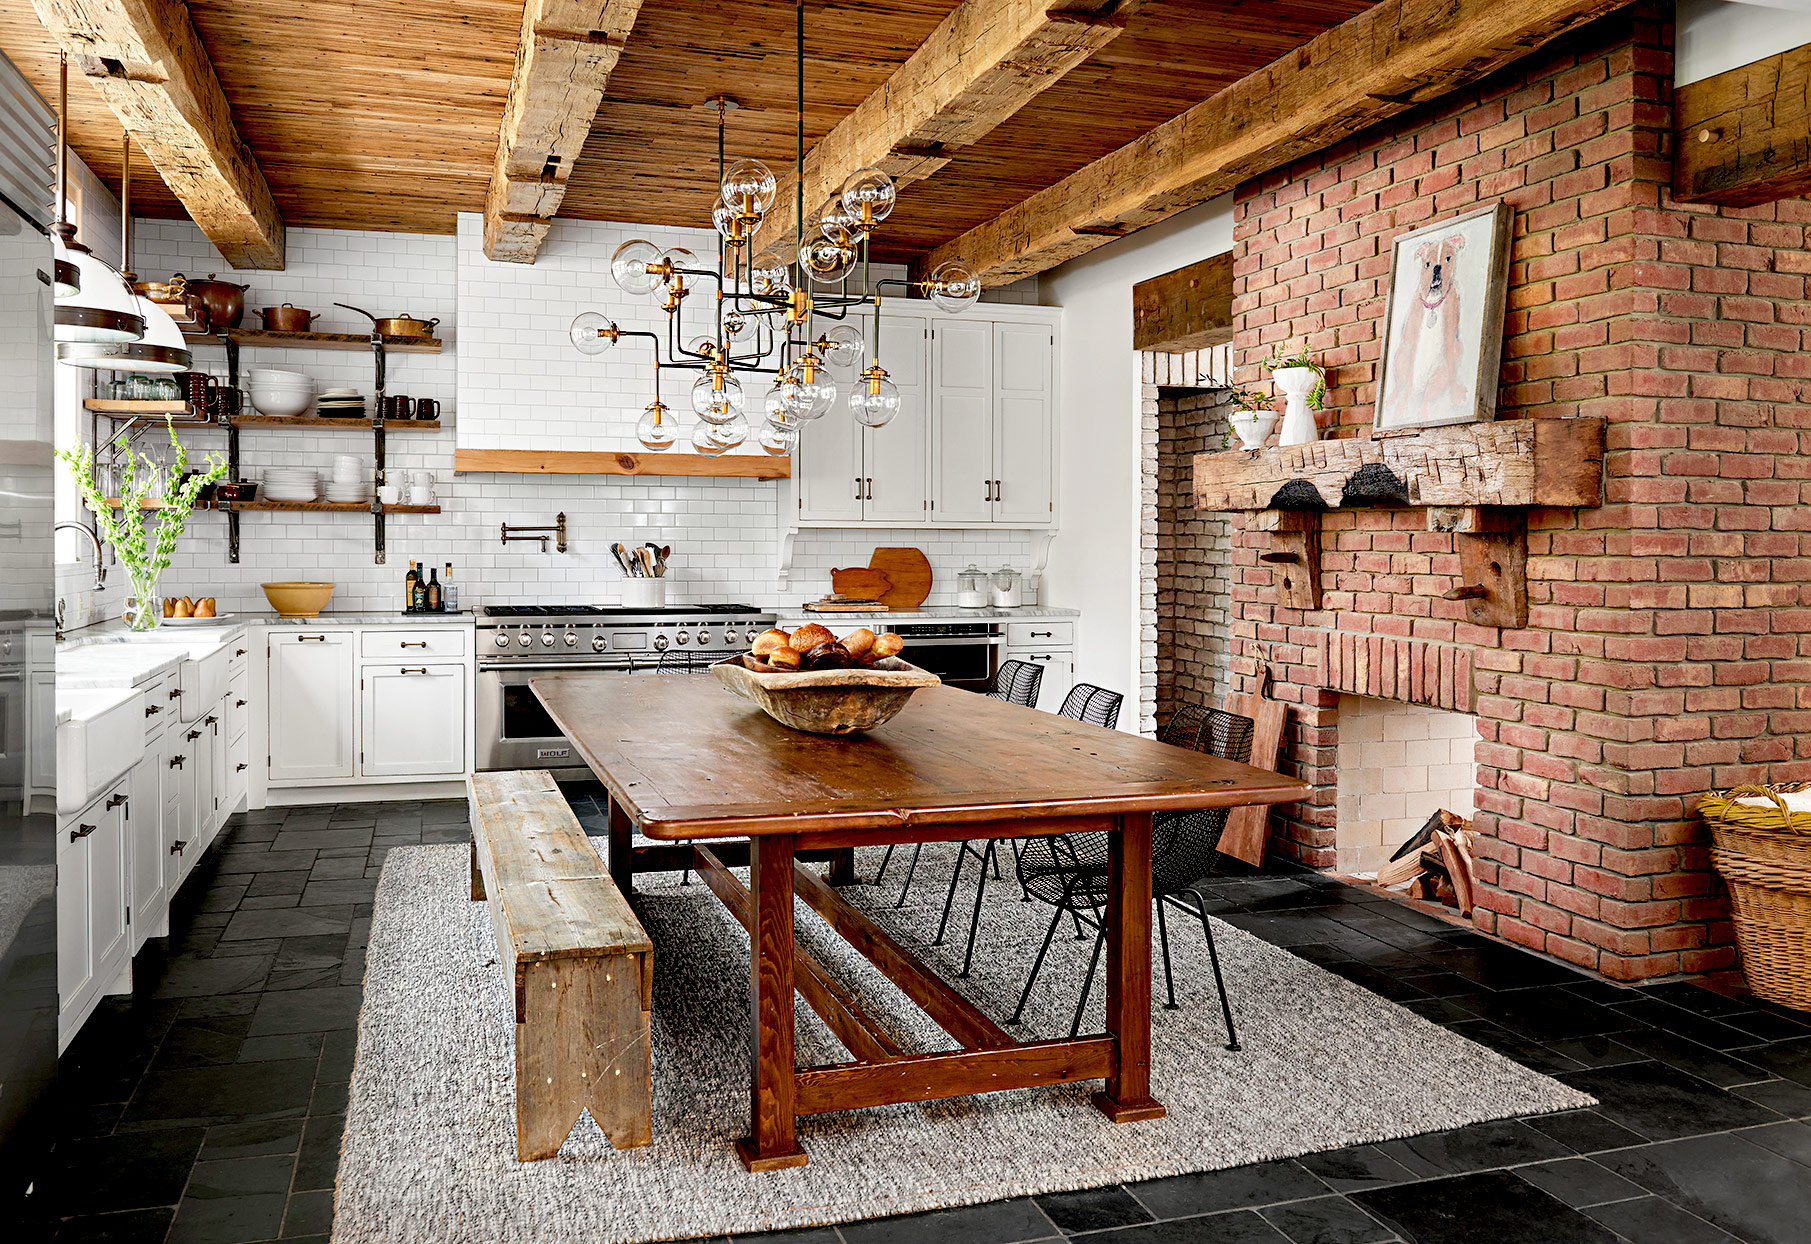 Kitchen with wooden table and brick fireplace